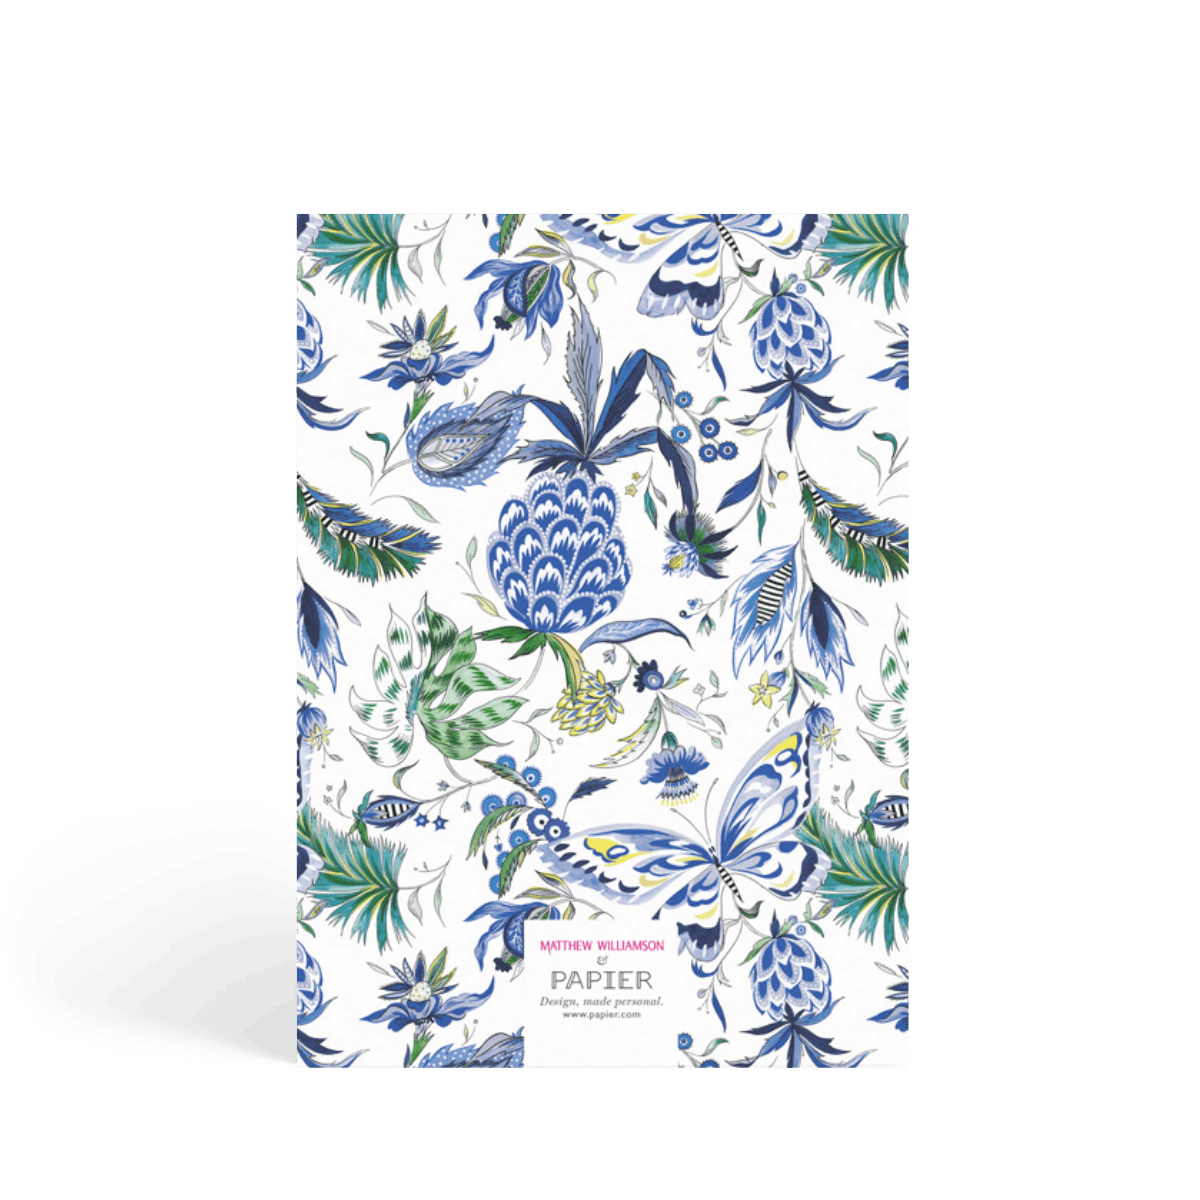 Https%3a%2f%2fwww.papier.com%2fproduct image%2f64431%2f5%2fpineapple paisley 15130 arriere 1548967684.png?ixlib=rb 1.1